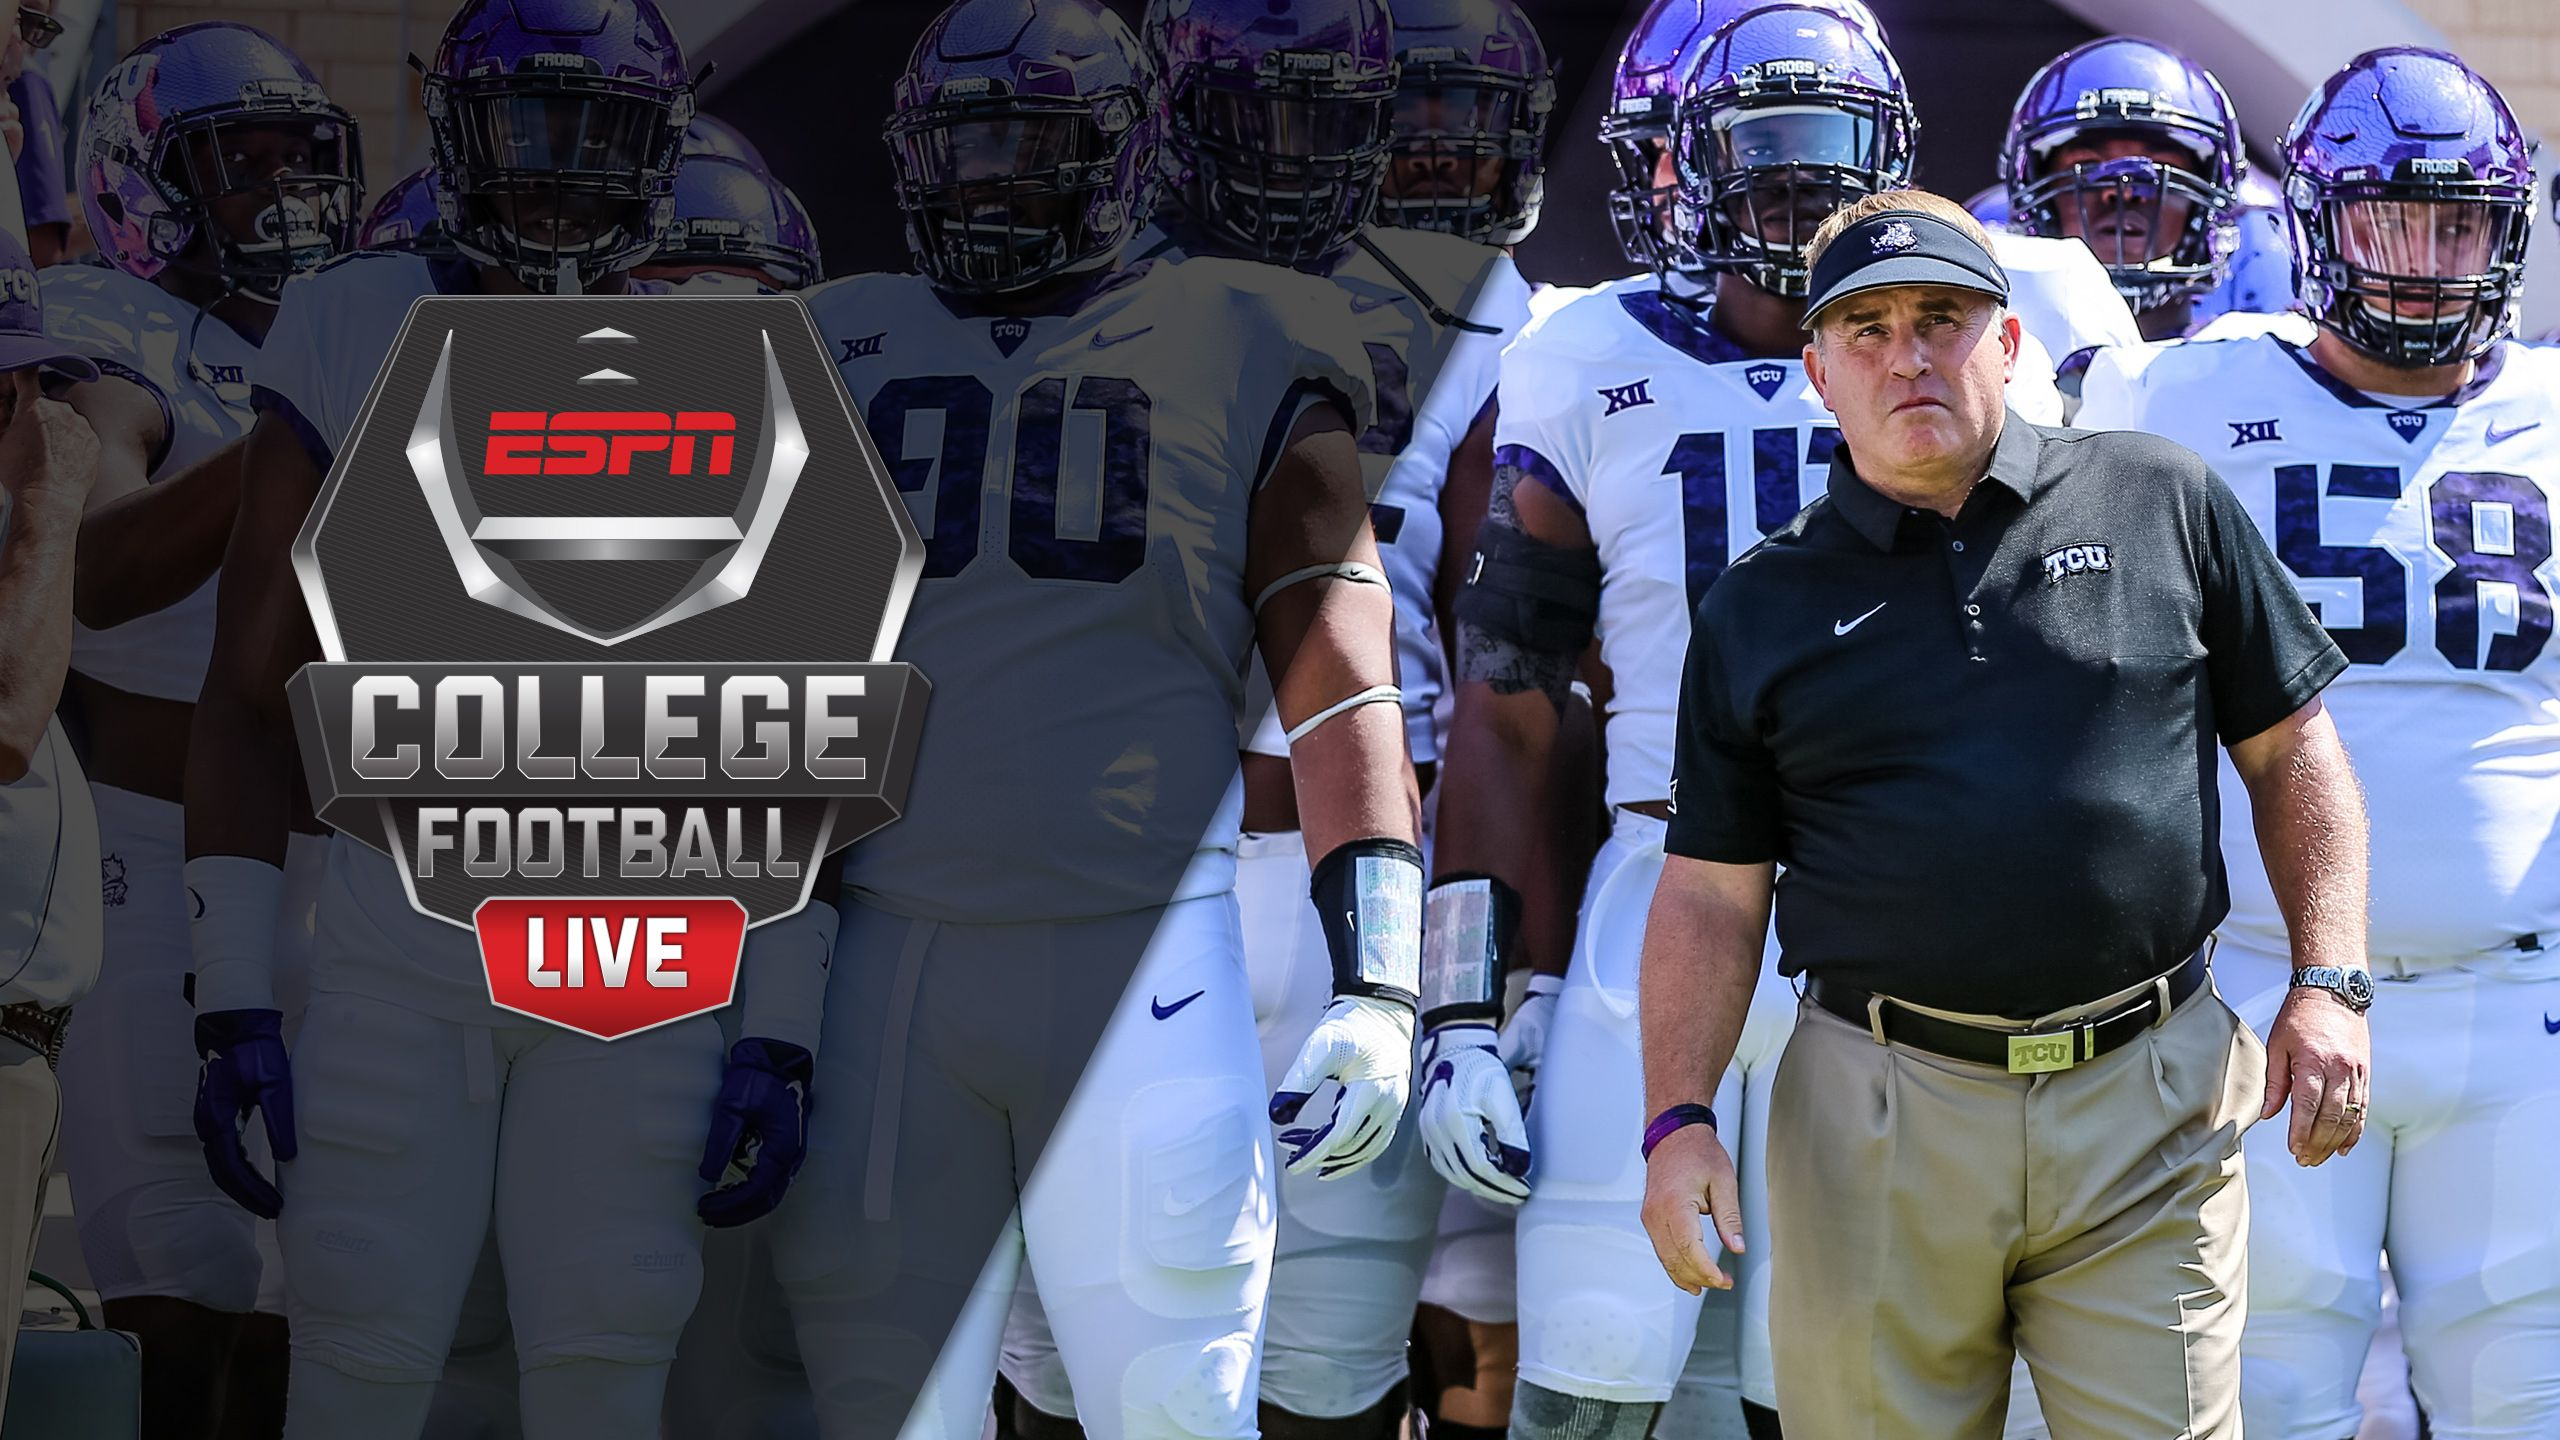 Mon, 10/23 - College Football Live